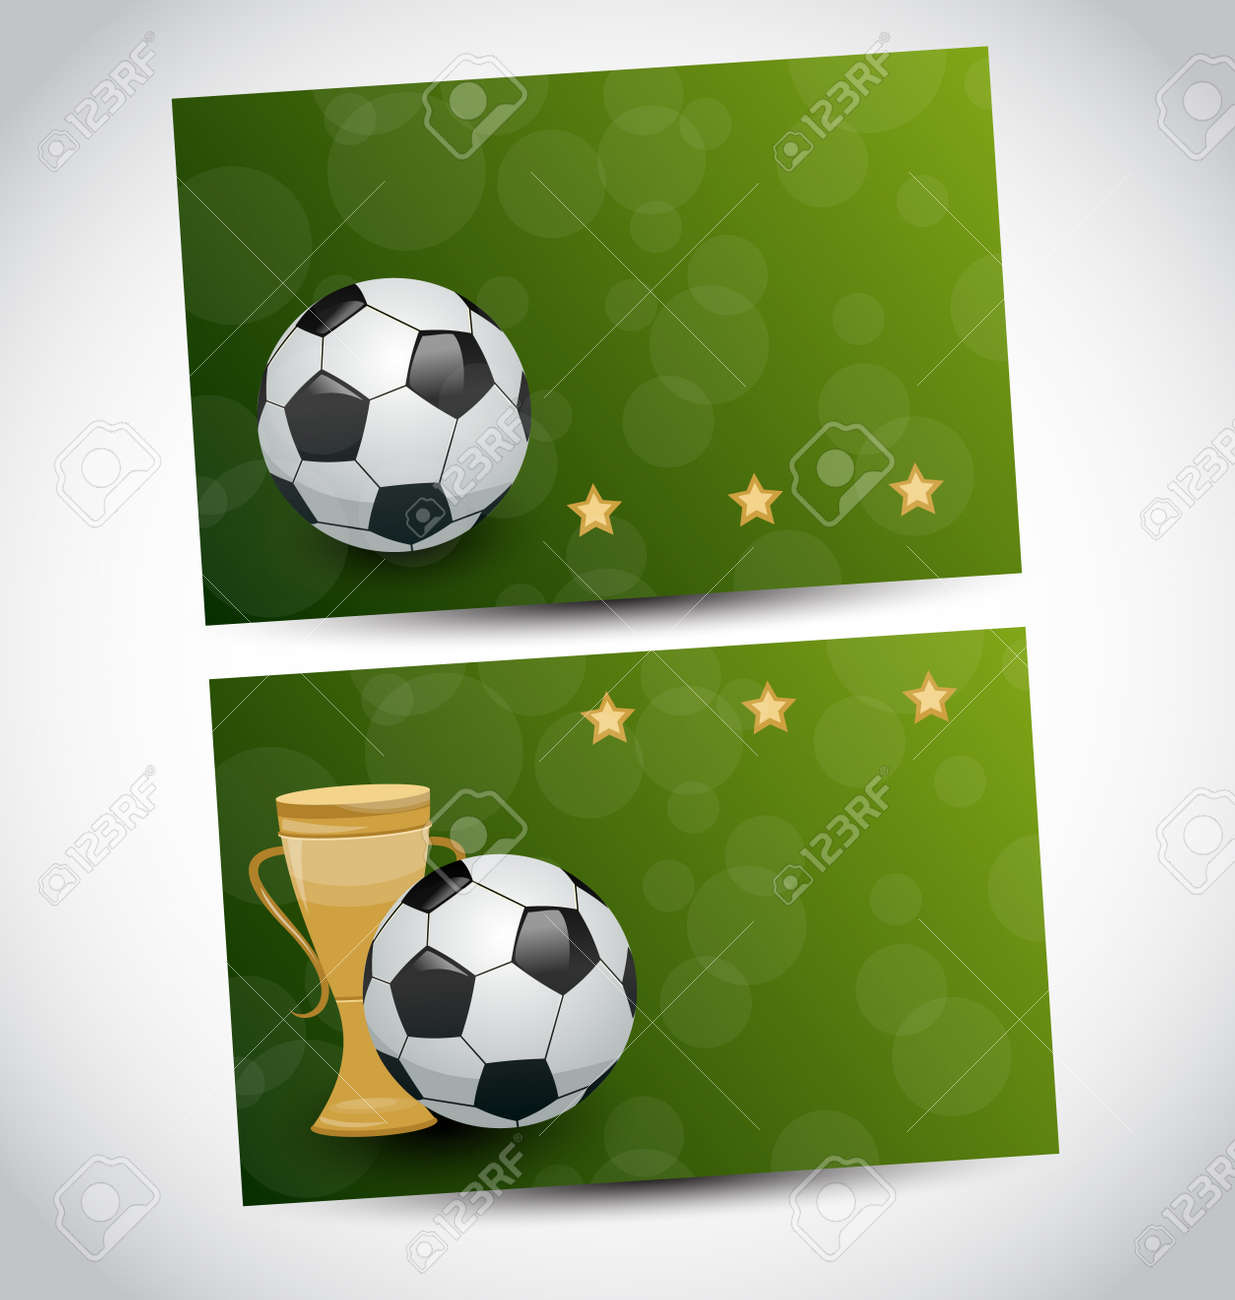 Illustration football cards with champion cup Stock Vector - 24379775